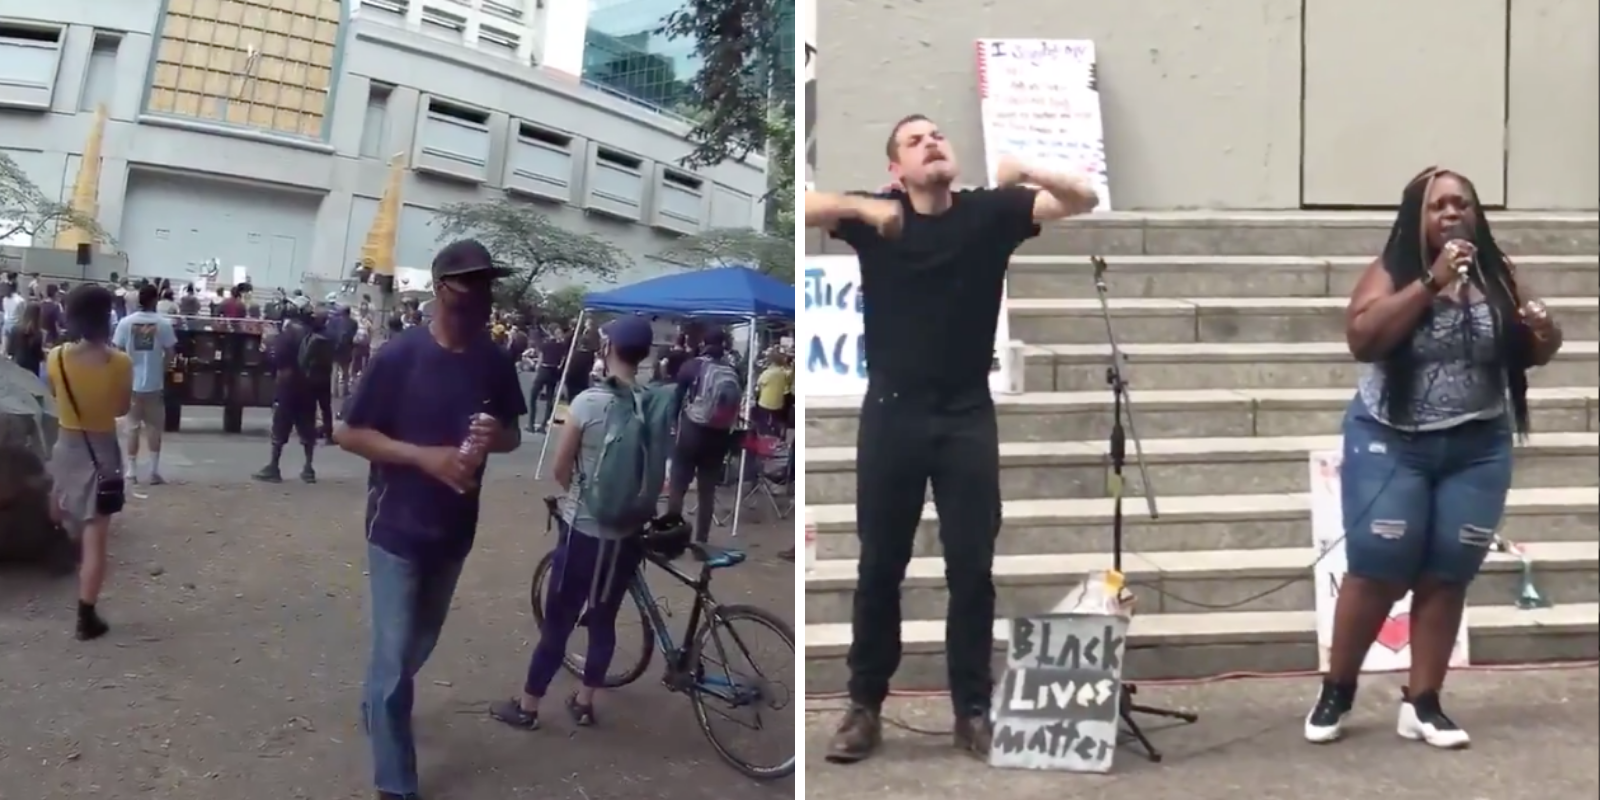 BLM speaker in Portland says police should have been strangled by their umbilical cords and she's ready to shoot them